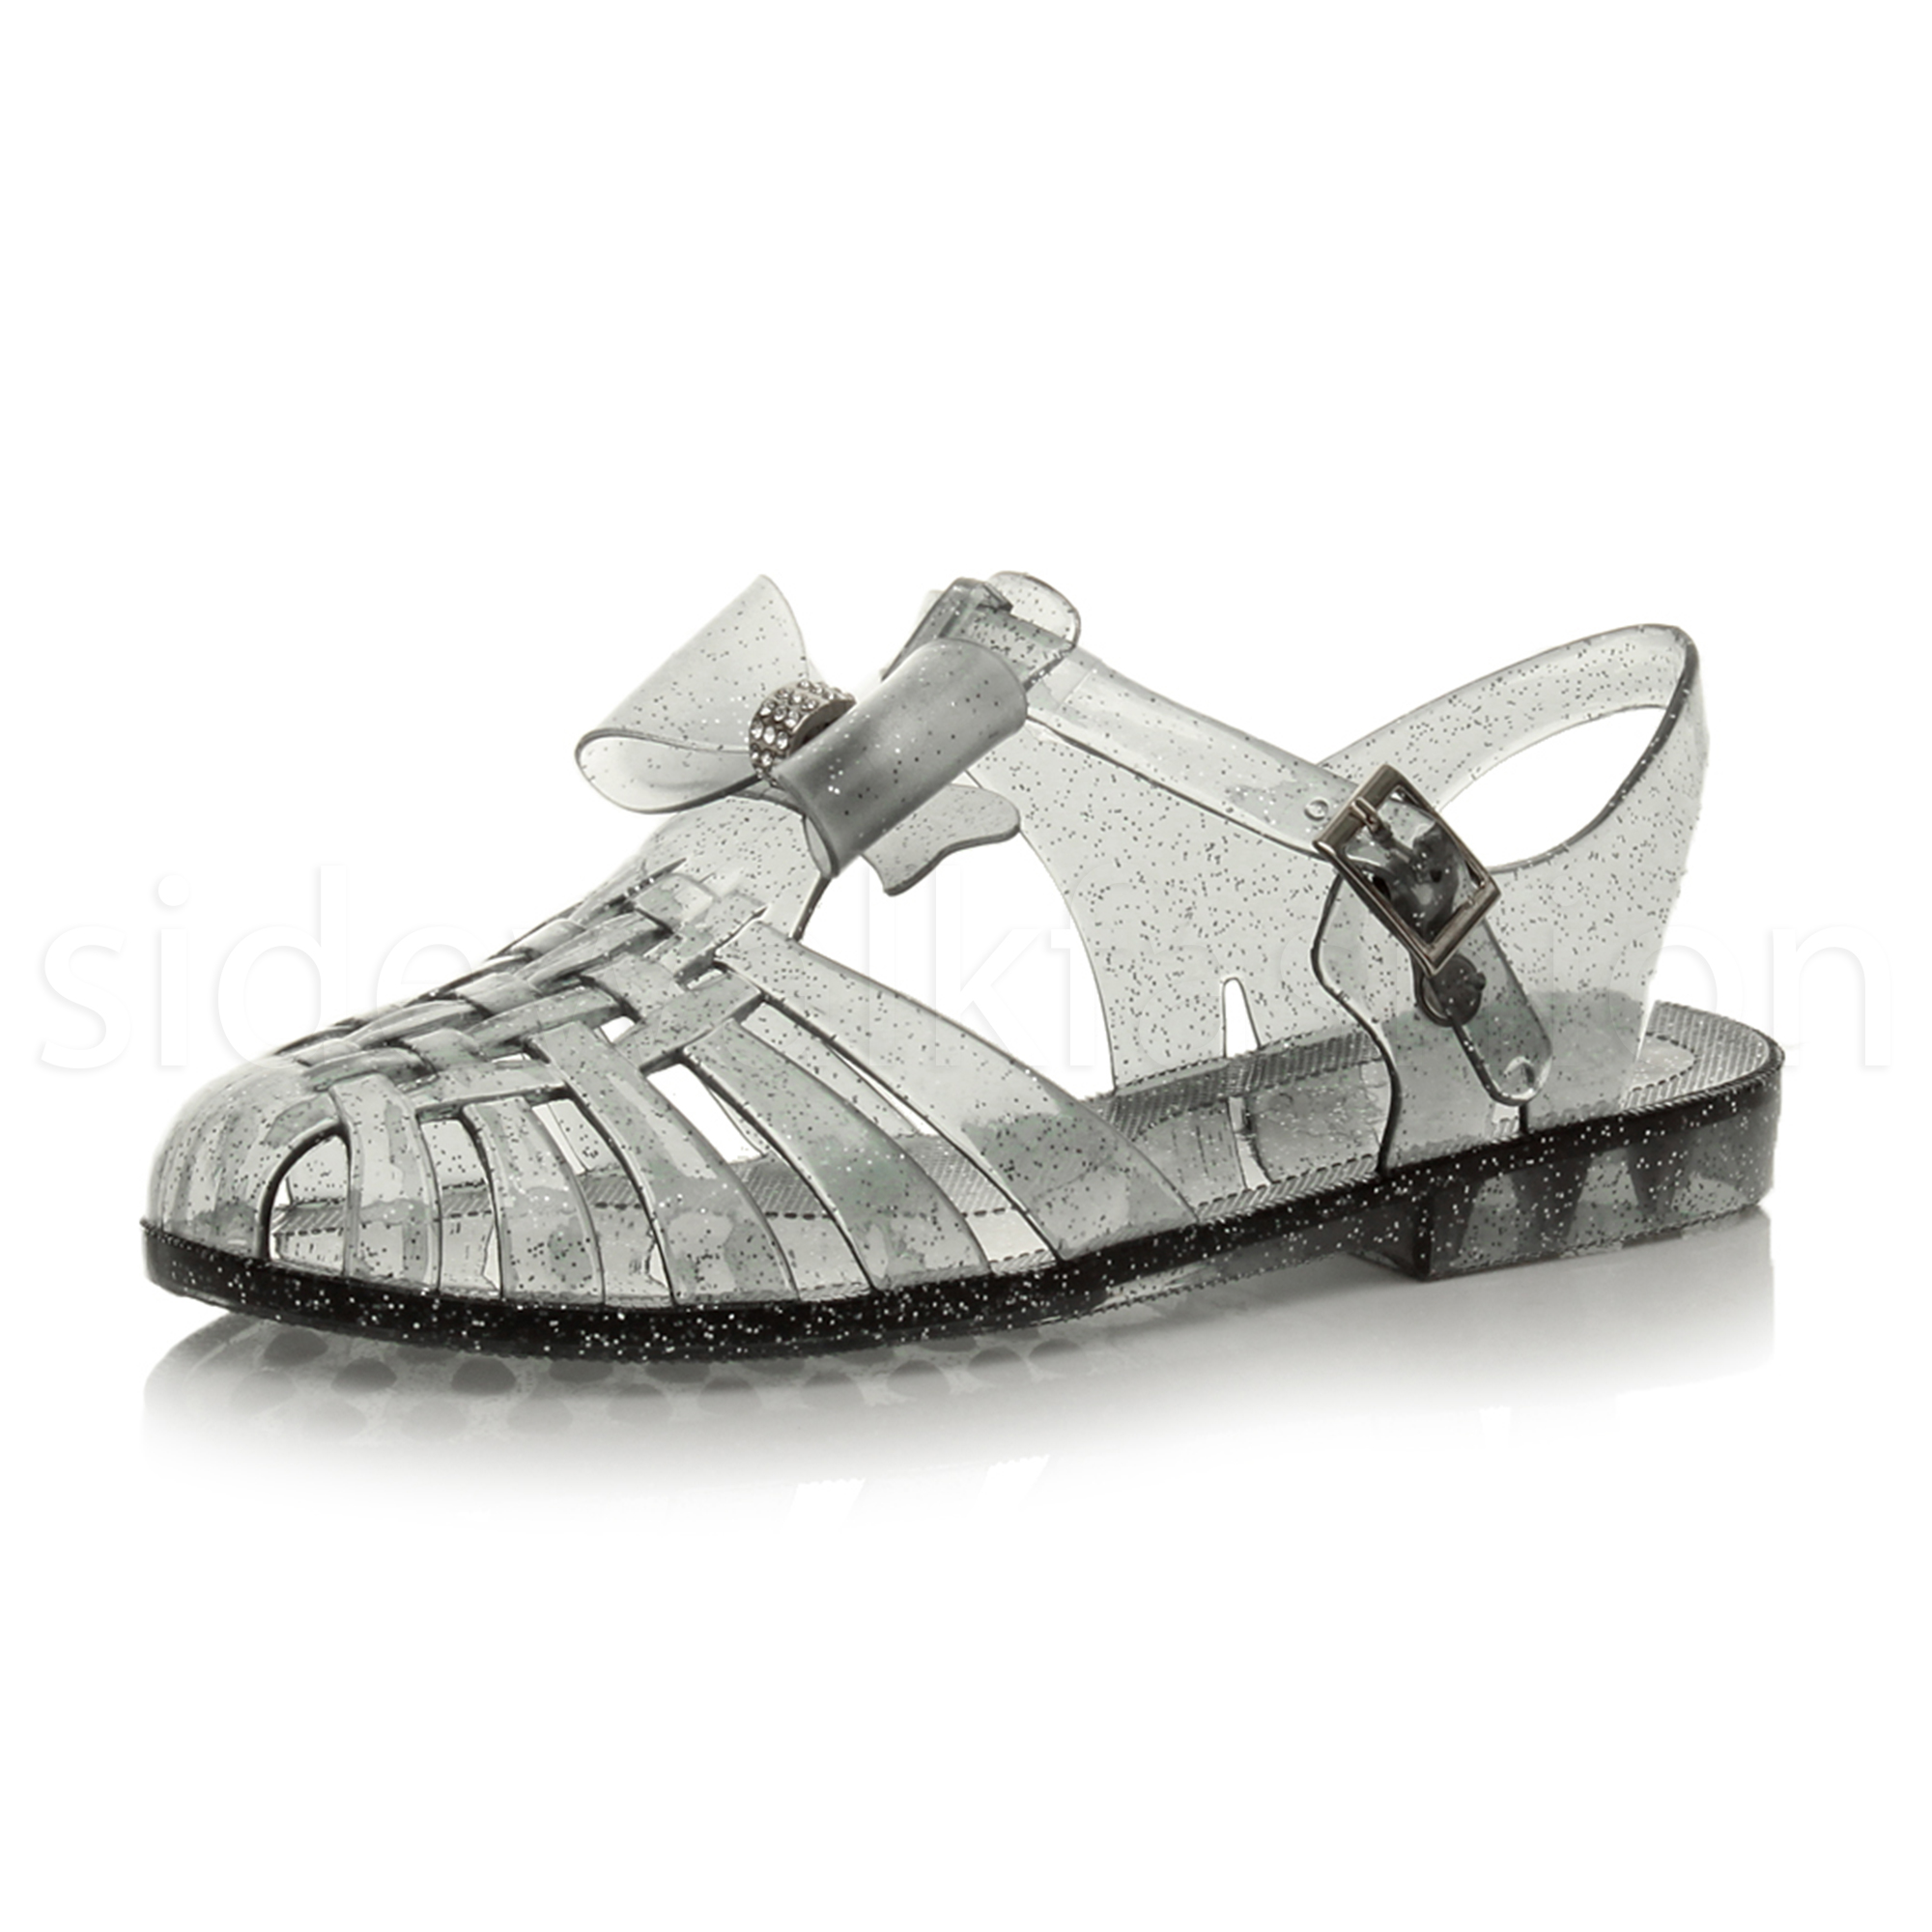 6eb6af68354ee Womens Girls Kids Flat Bow Gladiator Strappy Jelly Summer Sandals Shoes Size  UK 7   EU 40   US 9 Smoke Glitter. About this product. Picture 1 of 9   Picture ...